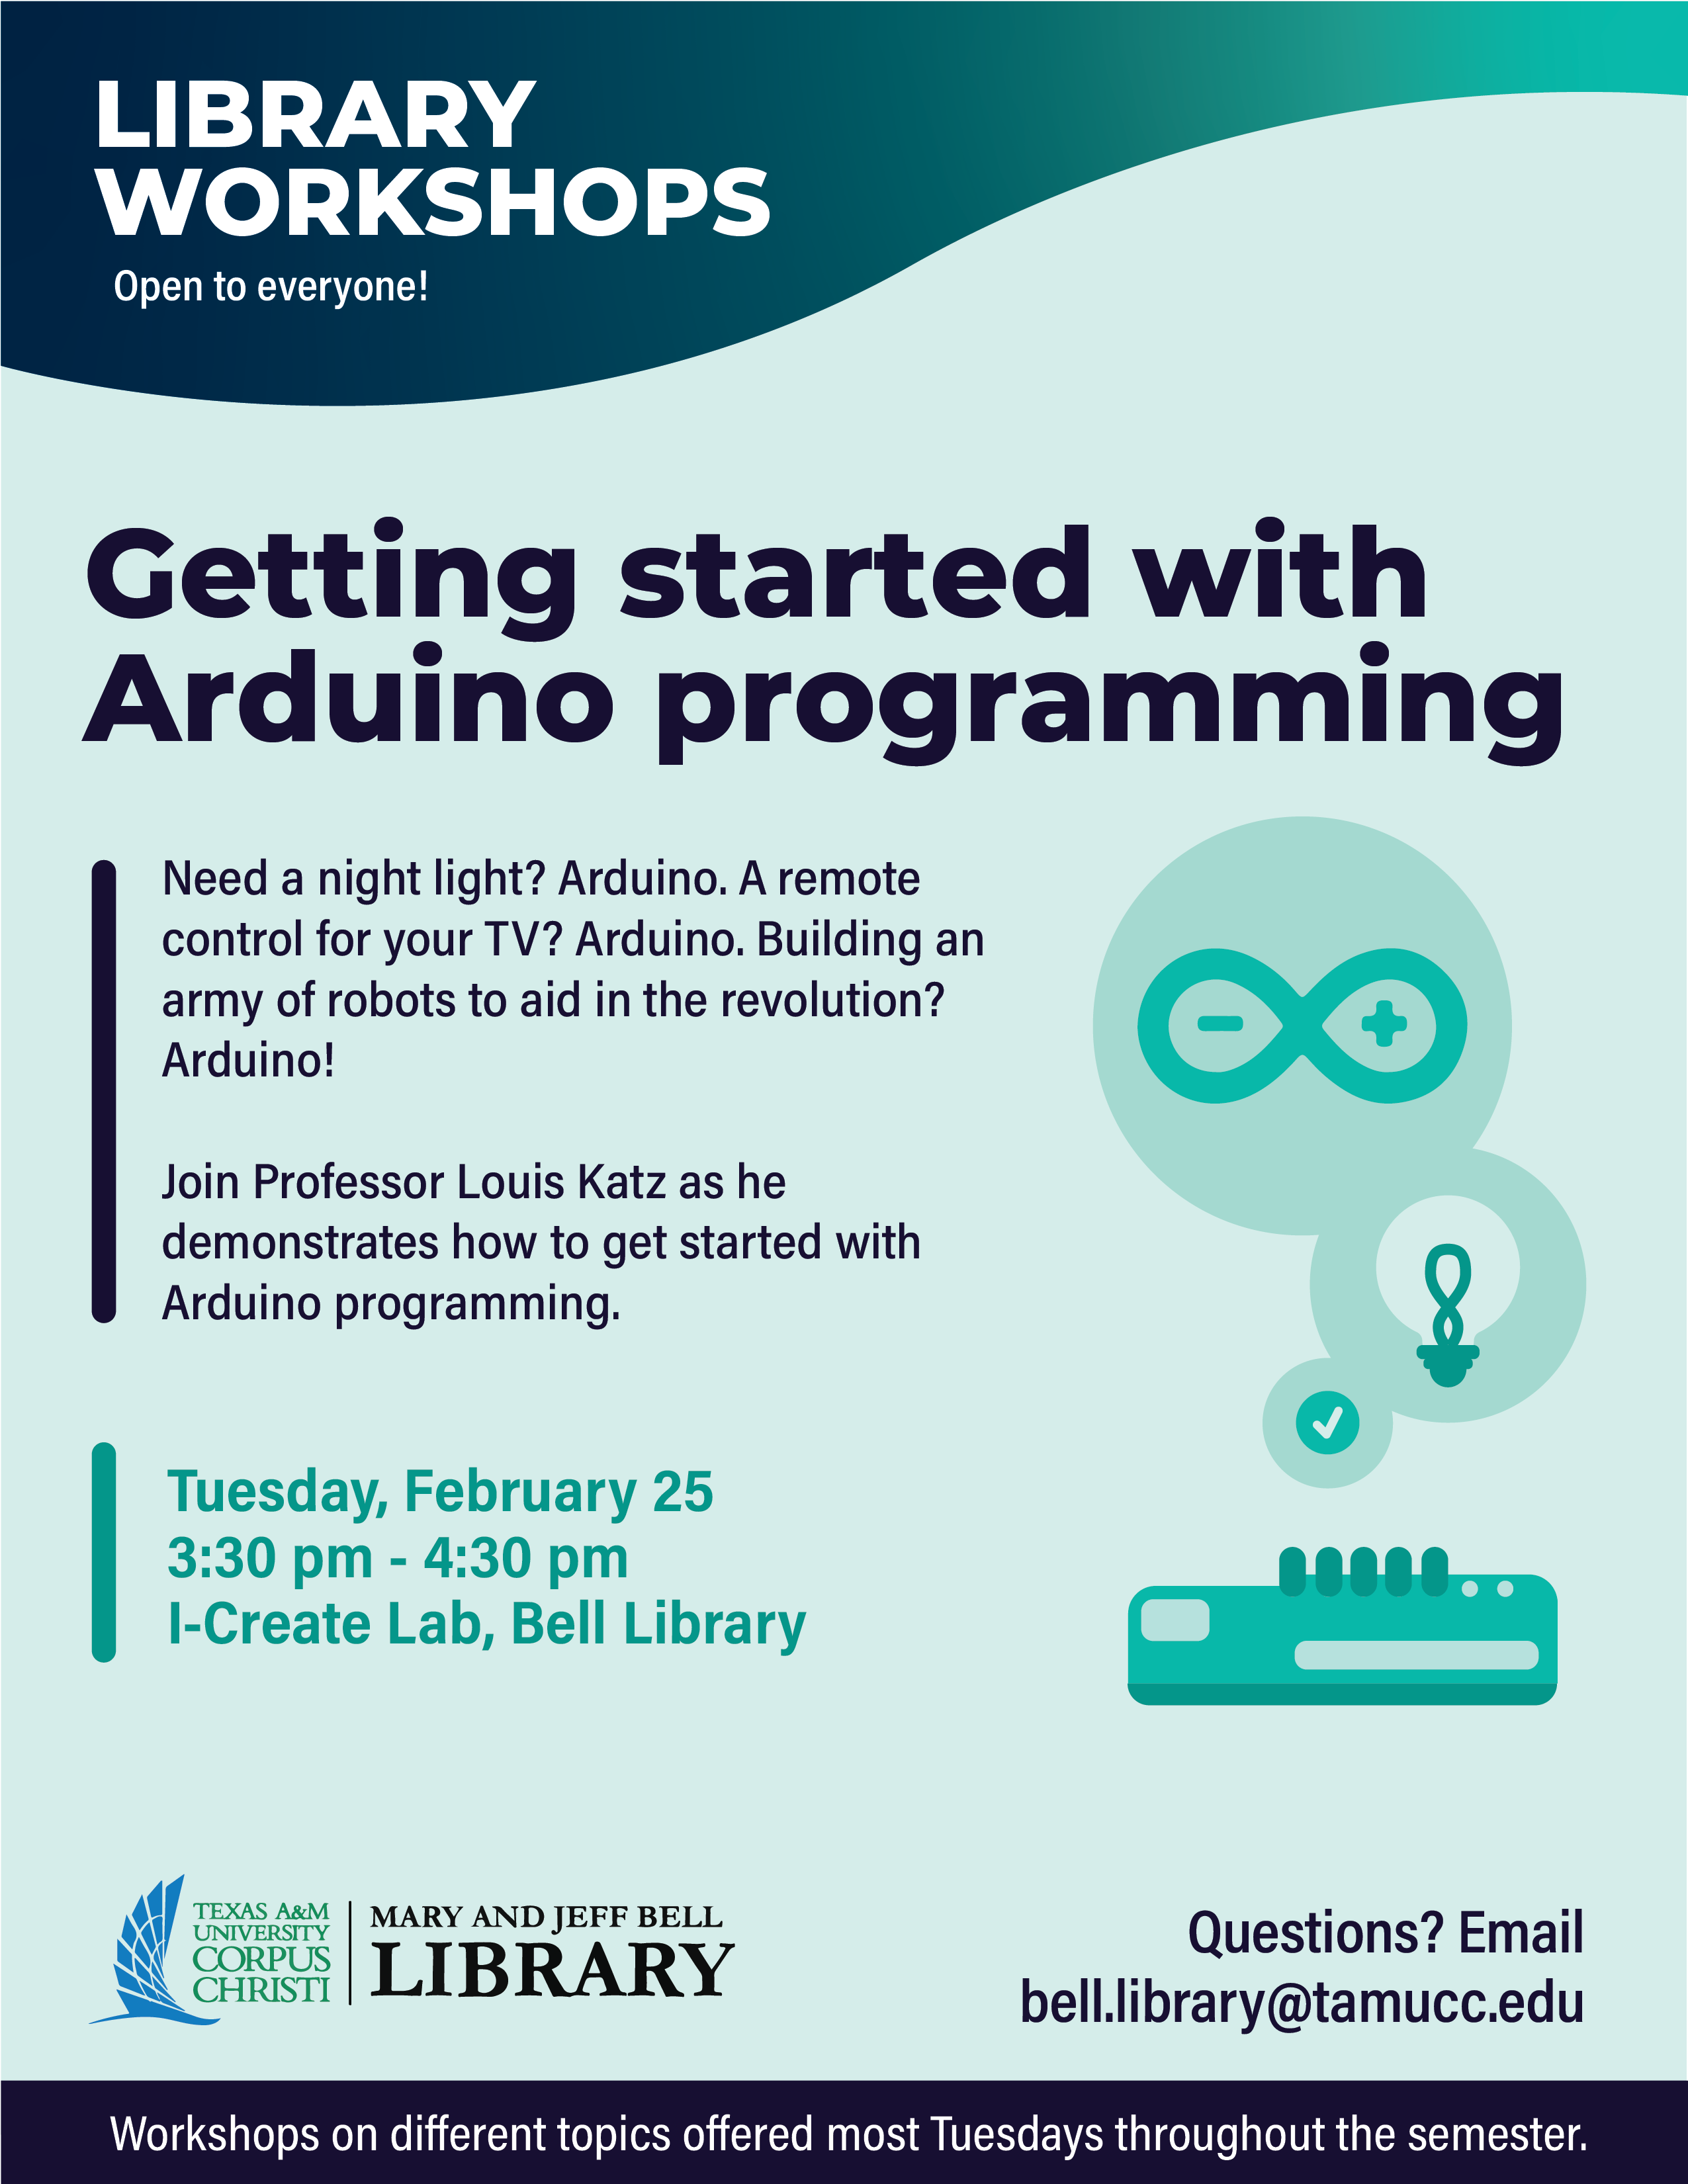 Library Workshop: Getting started with Arduino programming with Louis Katz